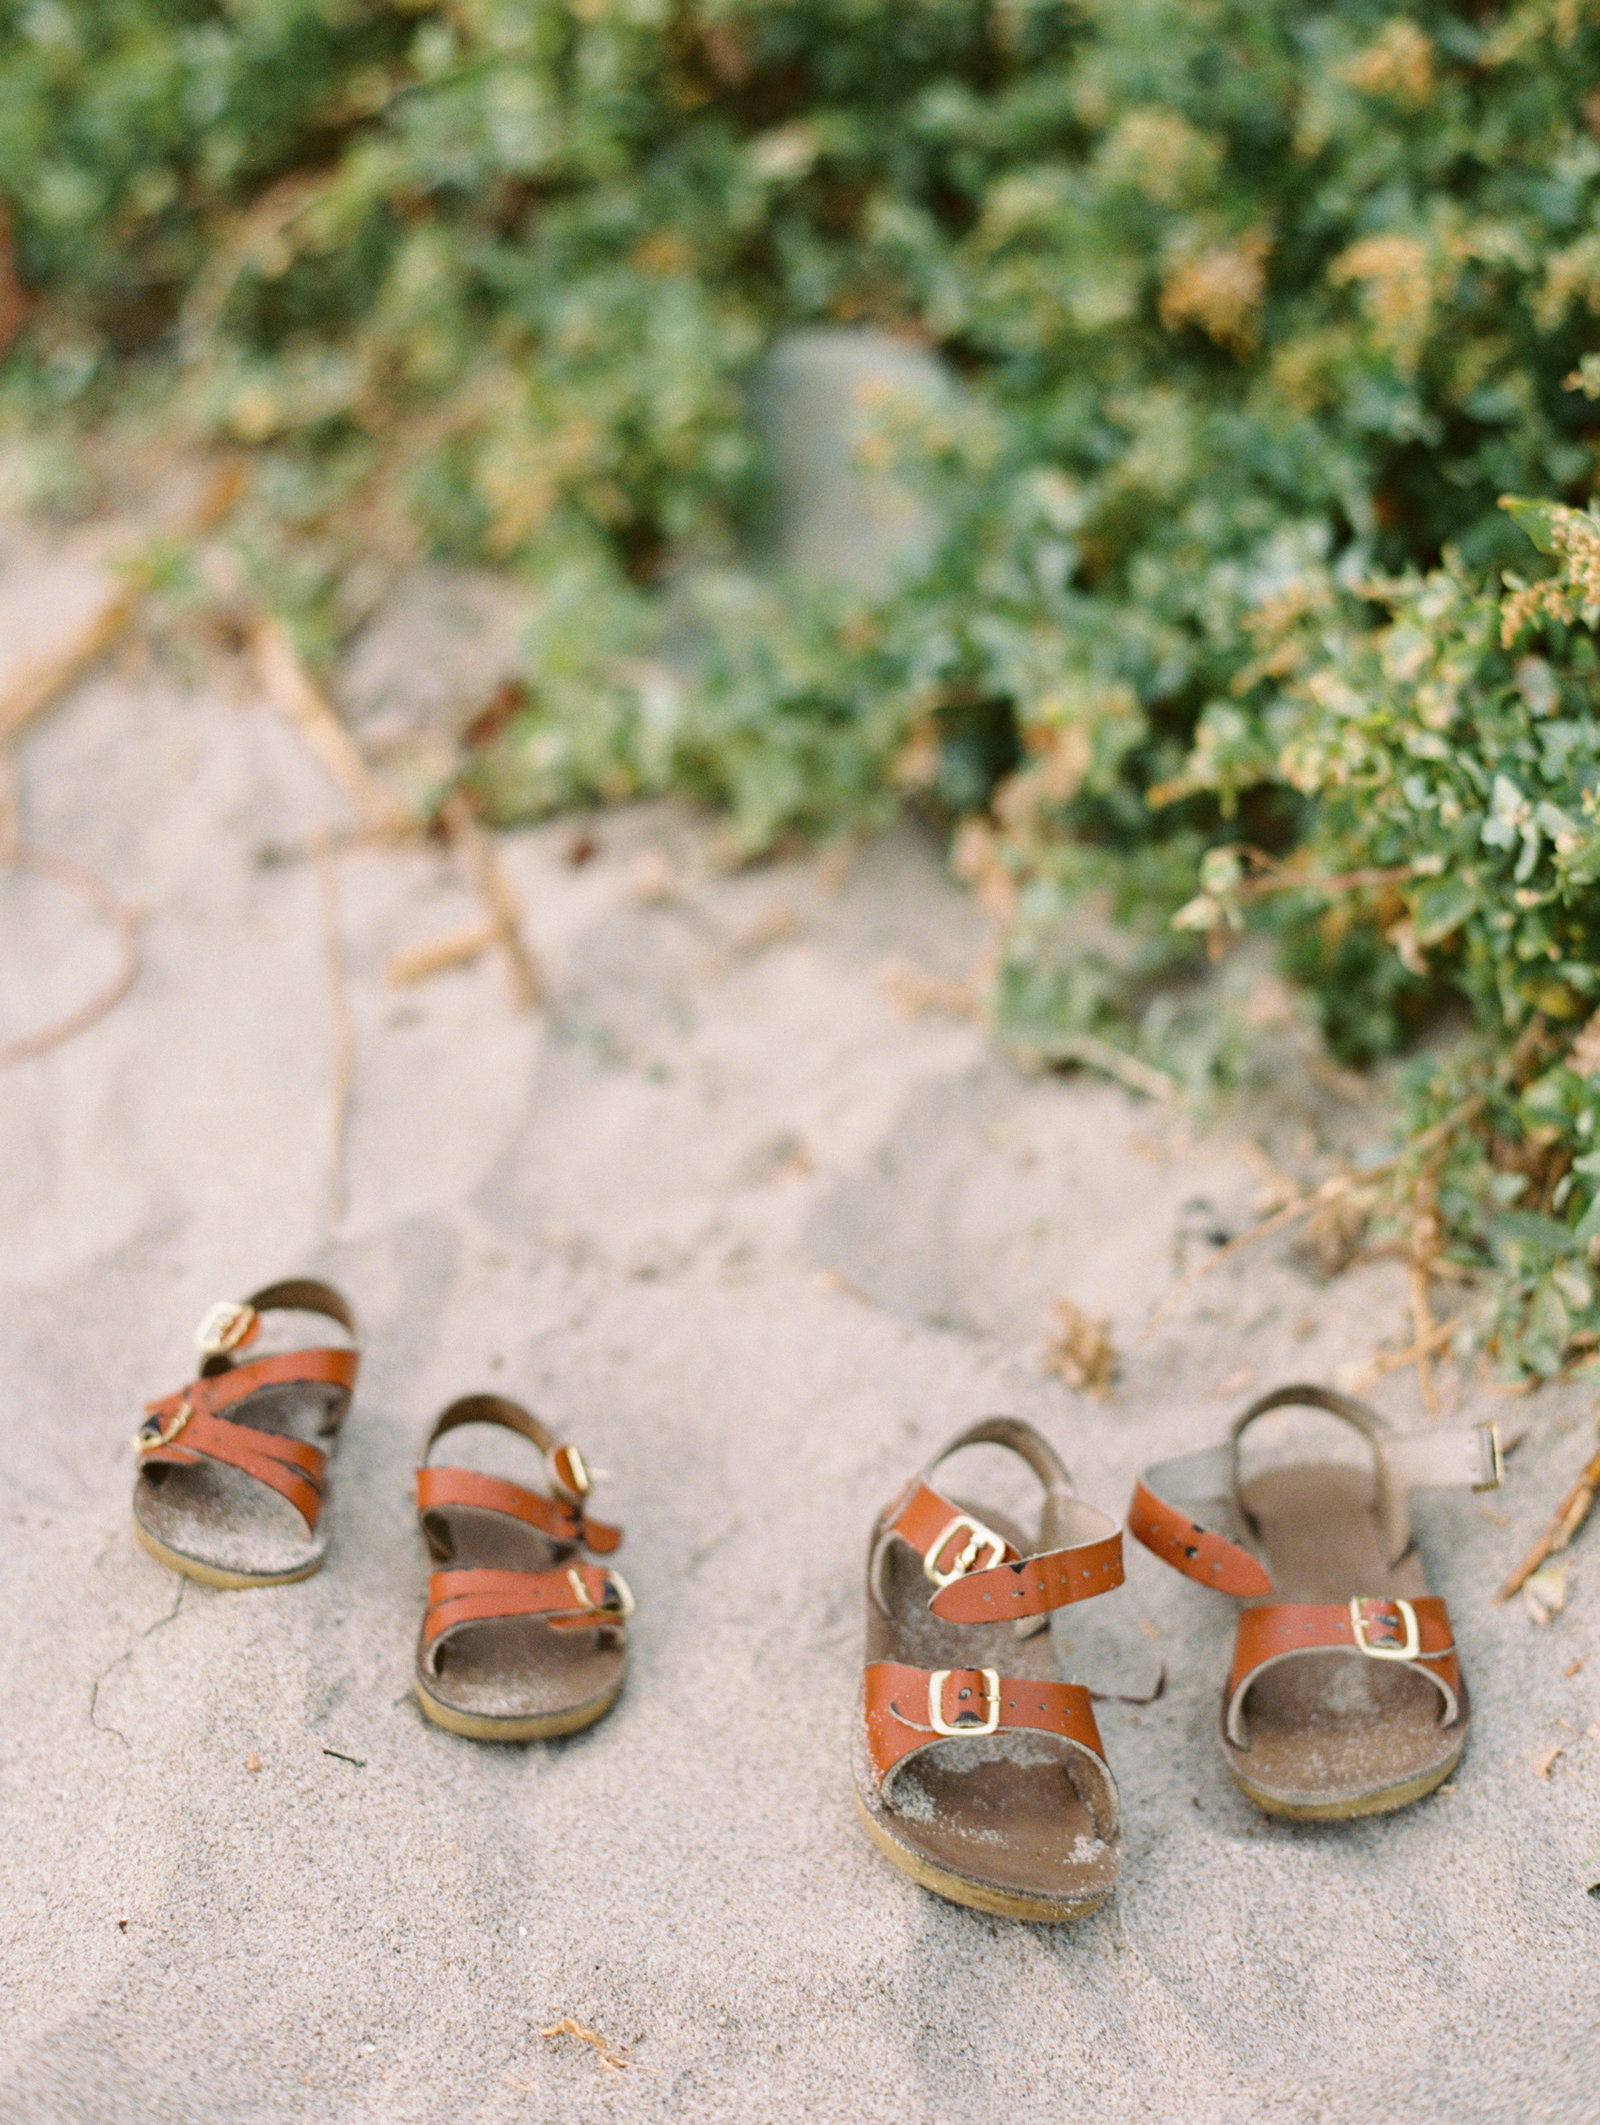 two pairs of little, brown saltwater sandals on the sand at the beach